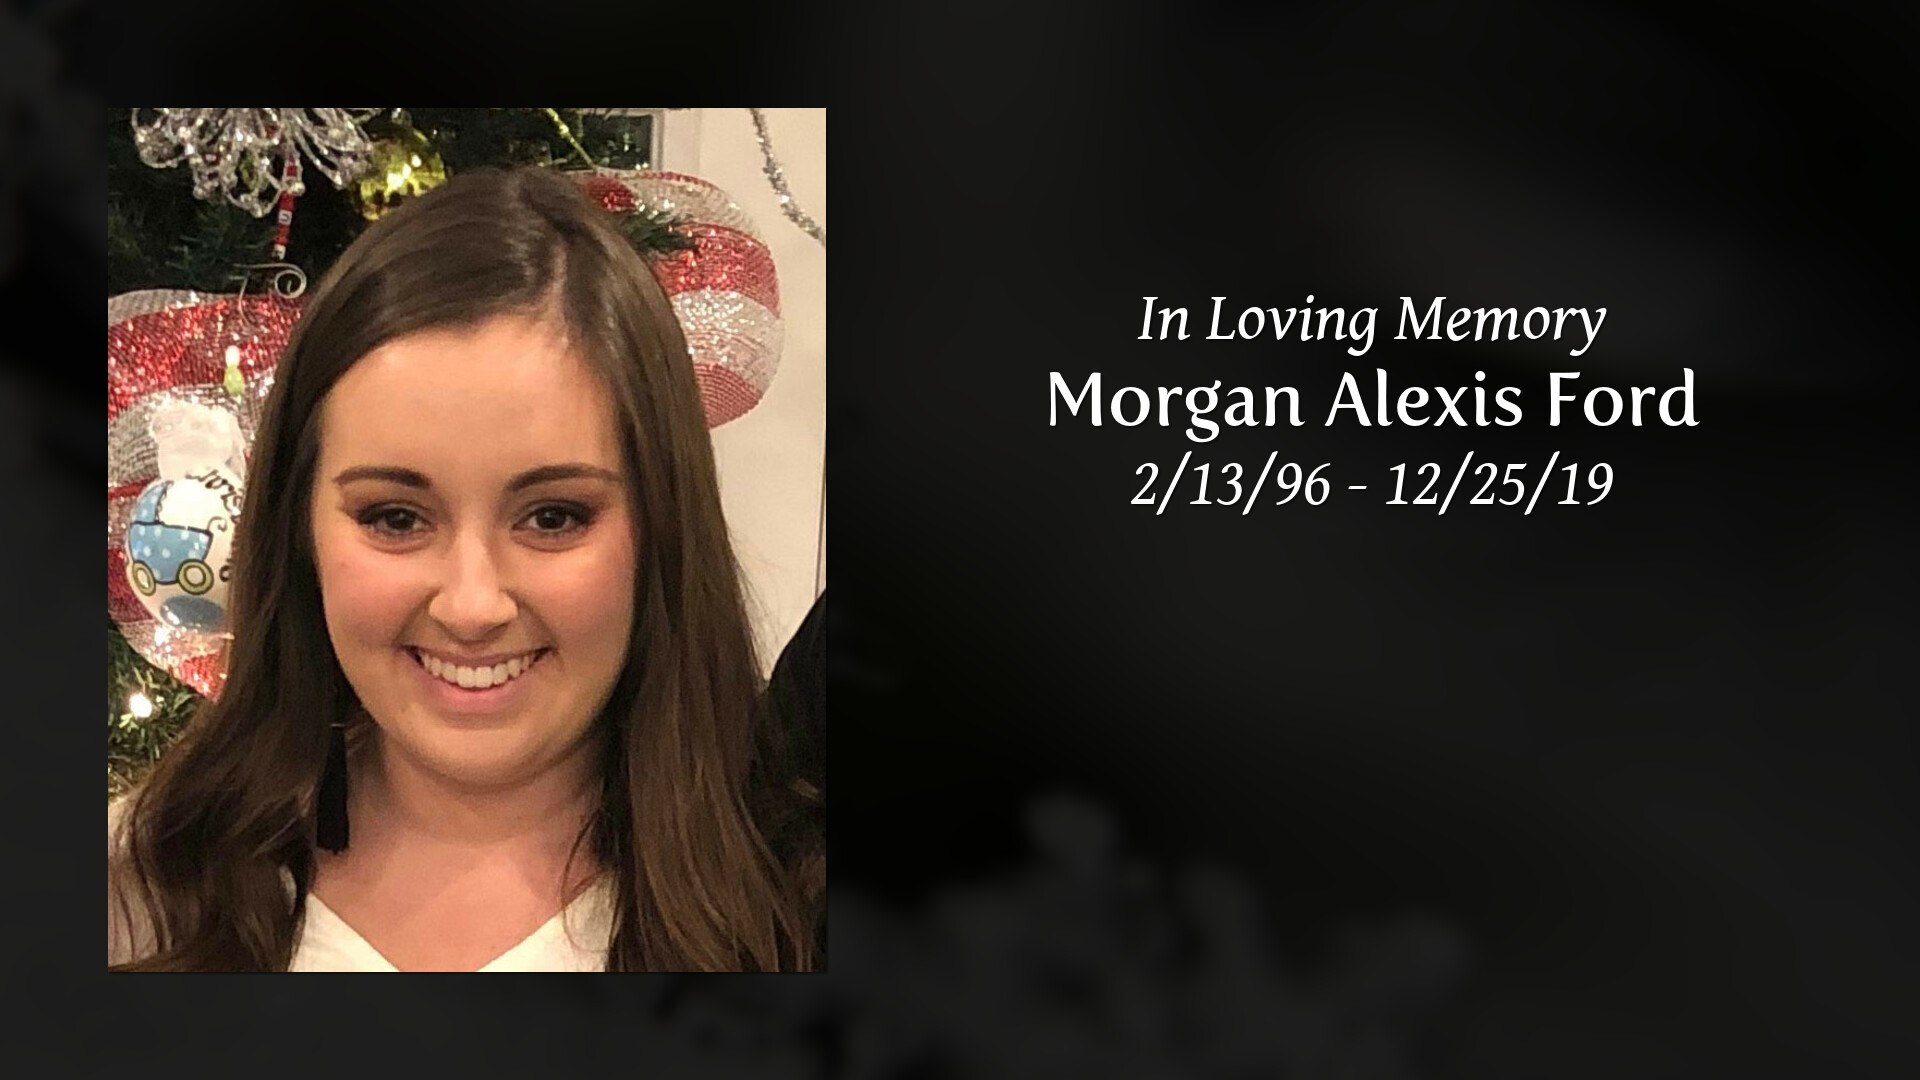 Alexis Ford obituary | morgan alexis ford of madisonville, kentucky